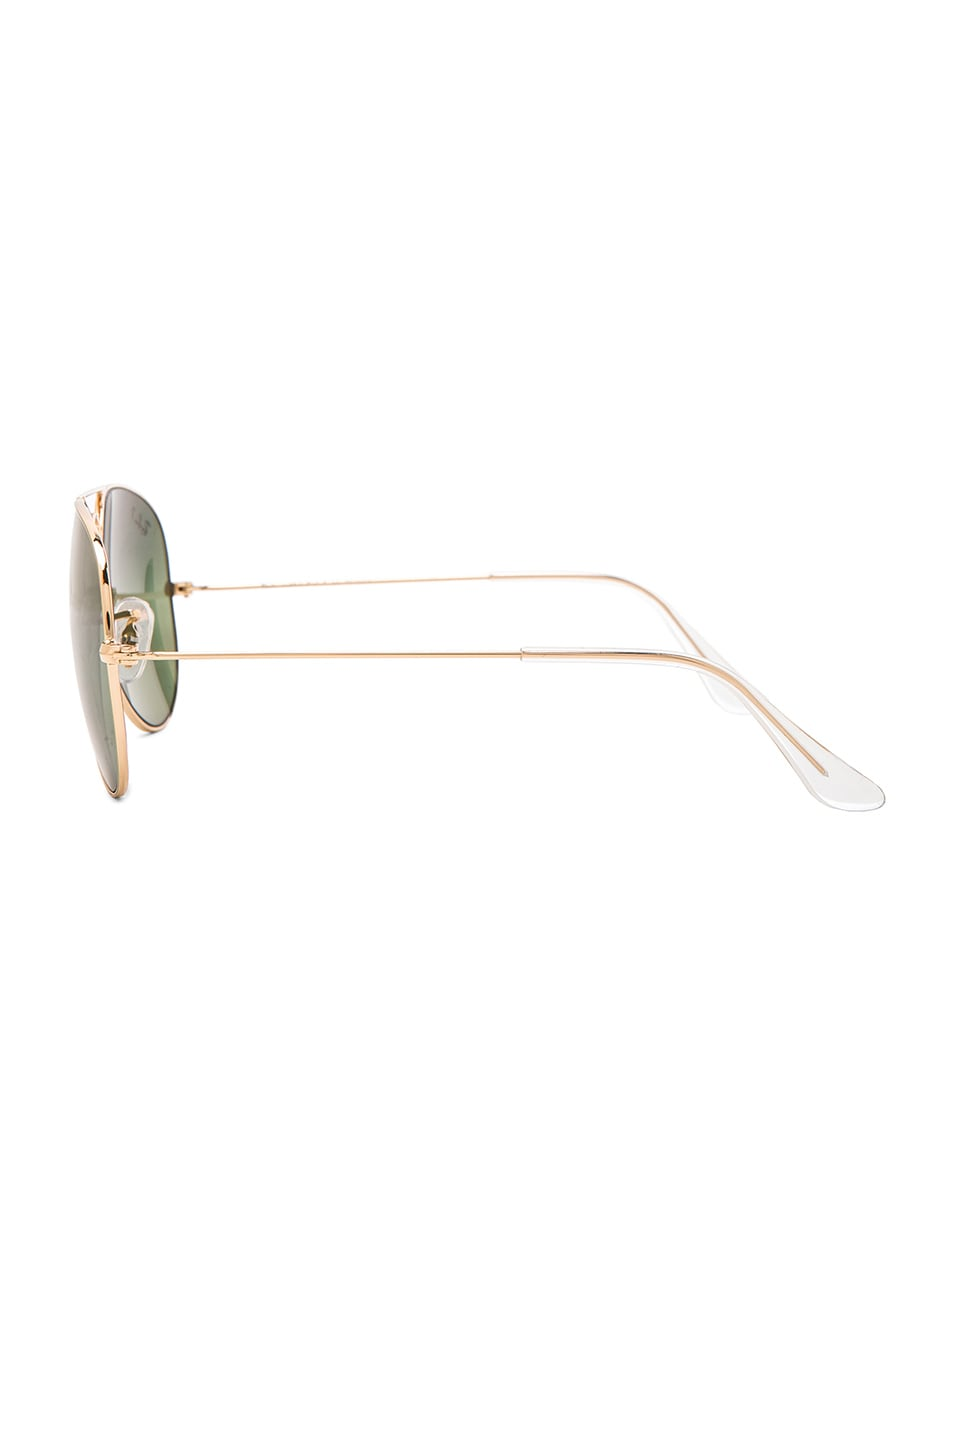 Image 3 of Ray-Ban Aviator Polarized Sunglasses in Green Mirror